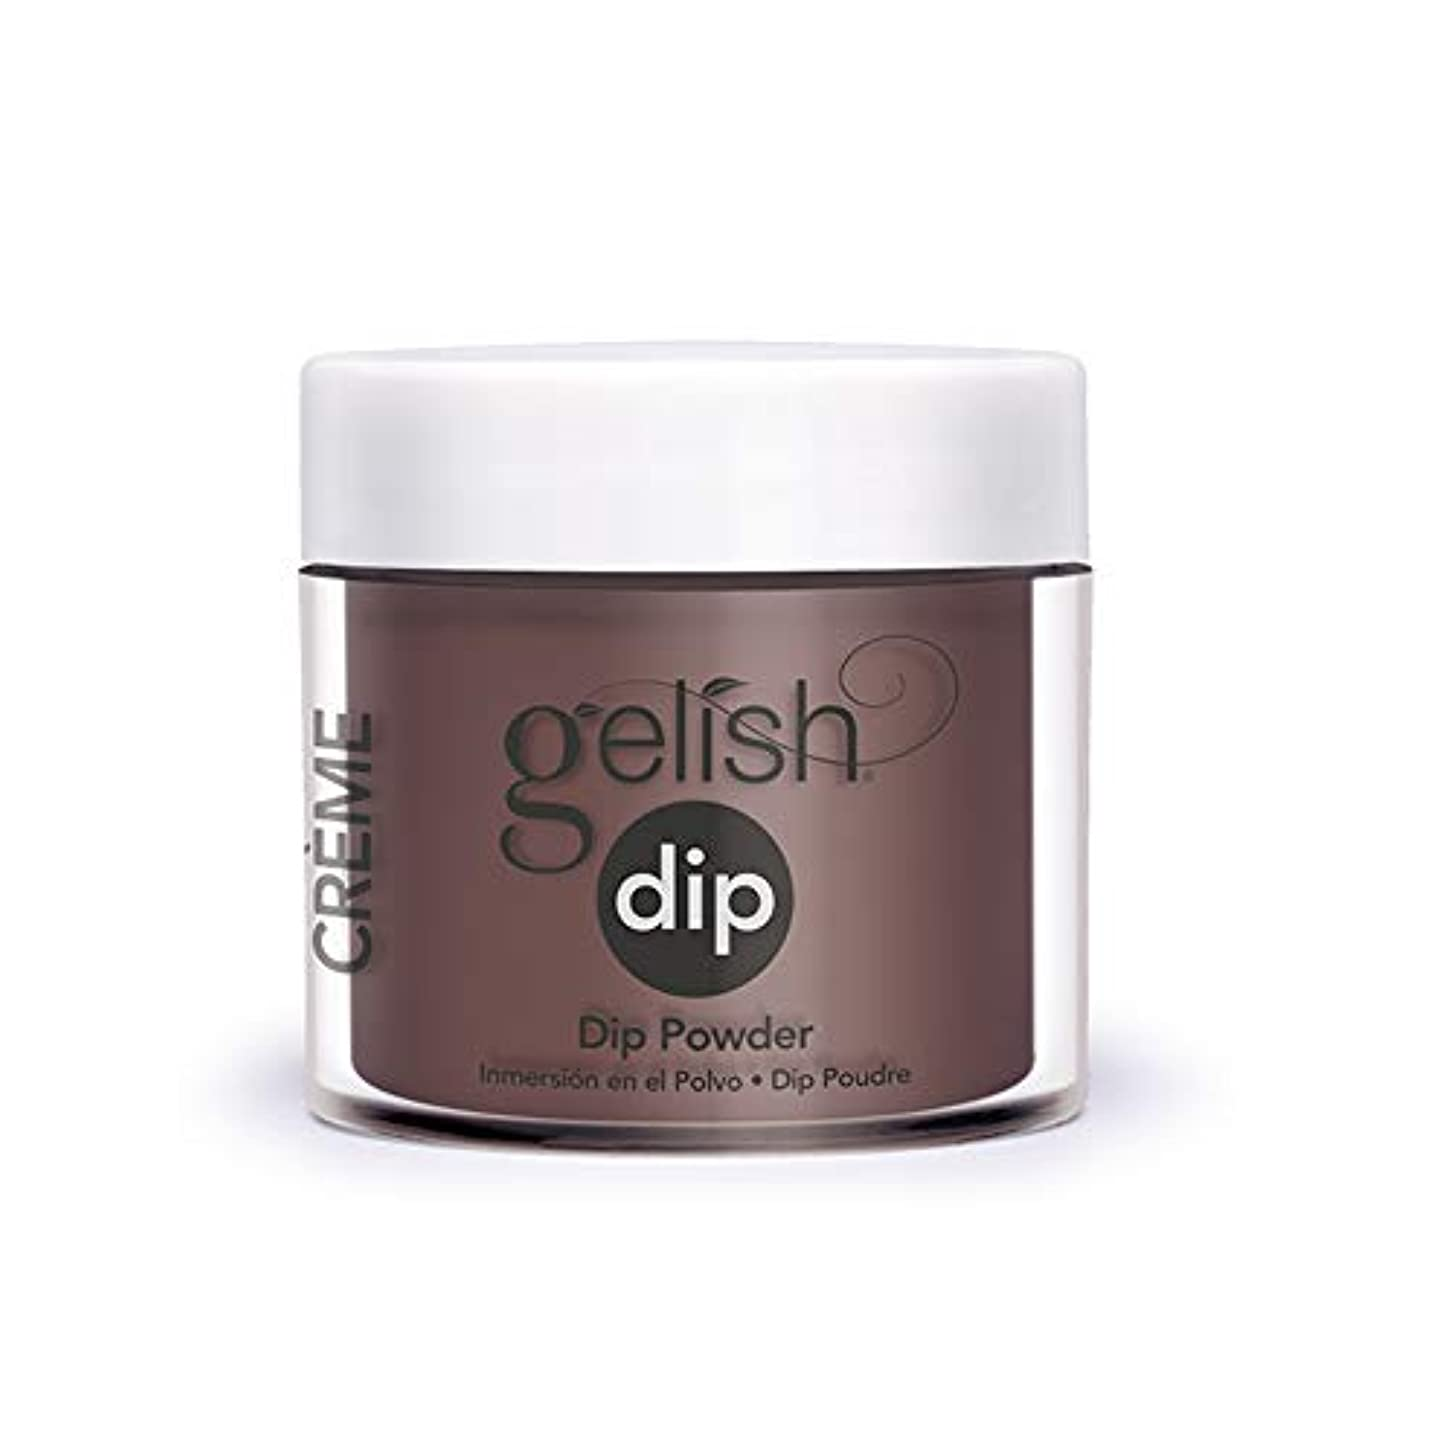 Harmony Gelish - Acrylic Dip Powder - Pumps or Cowboy Boots? - 23g / 0.8oz